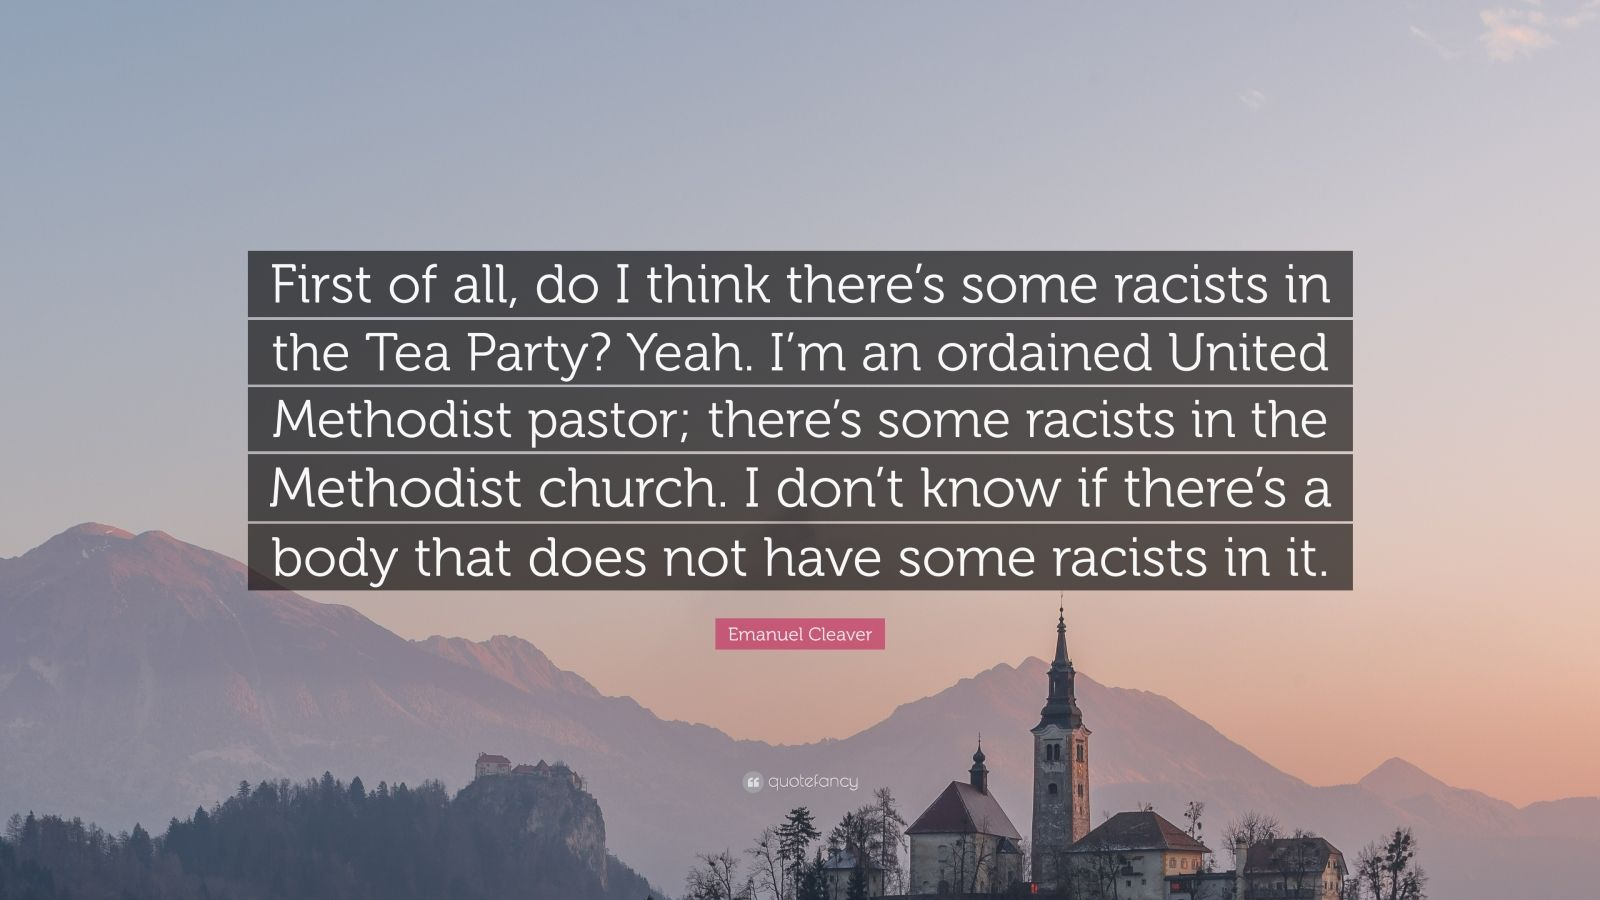 """Emanuel Cleaver Quote: """"First of all, do I think there's some racists in the Tea Party? Yeah. I'm an ordained United Methodist pastor; there's some racists in the Methodist church. I don't know if there's a body that does not have some racists in it."""""""